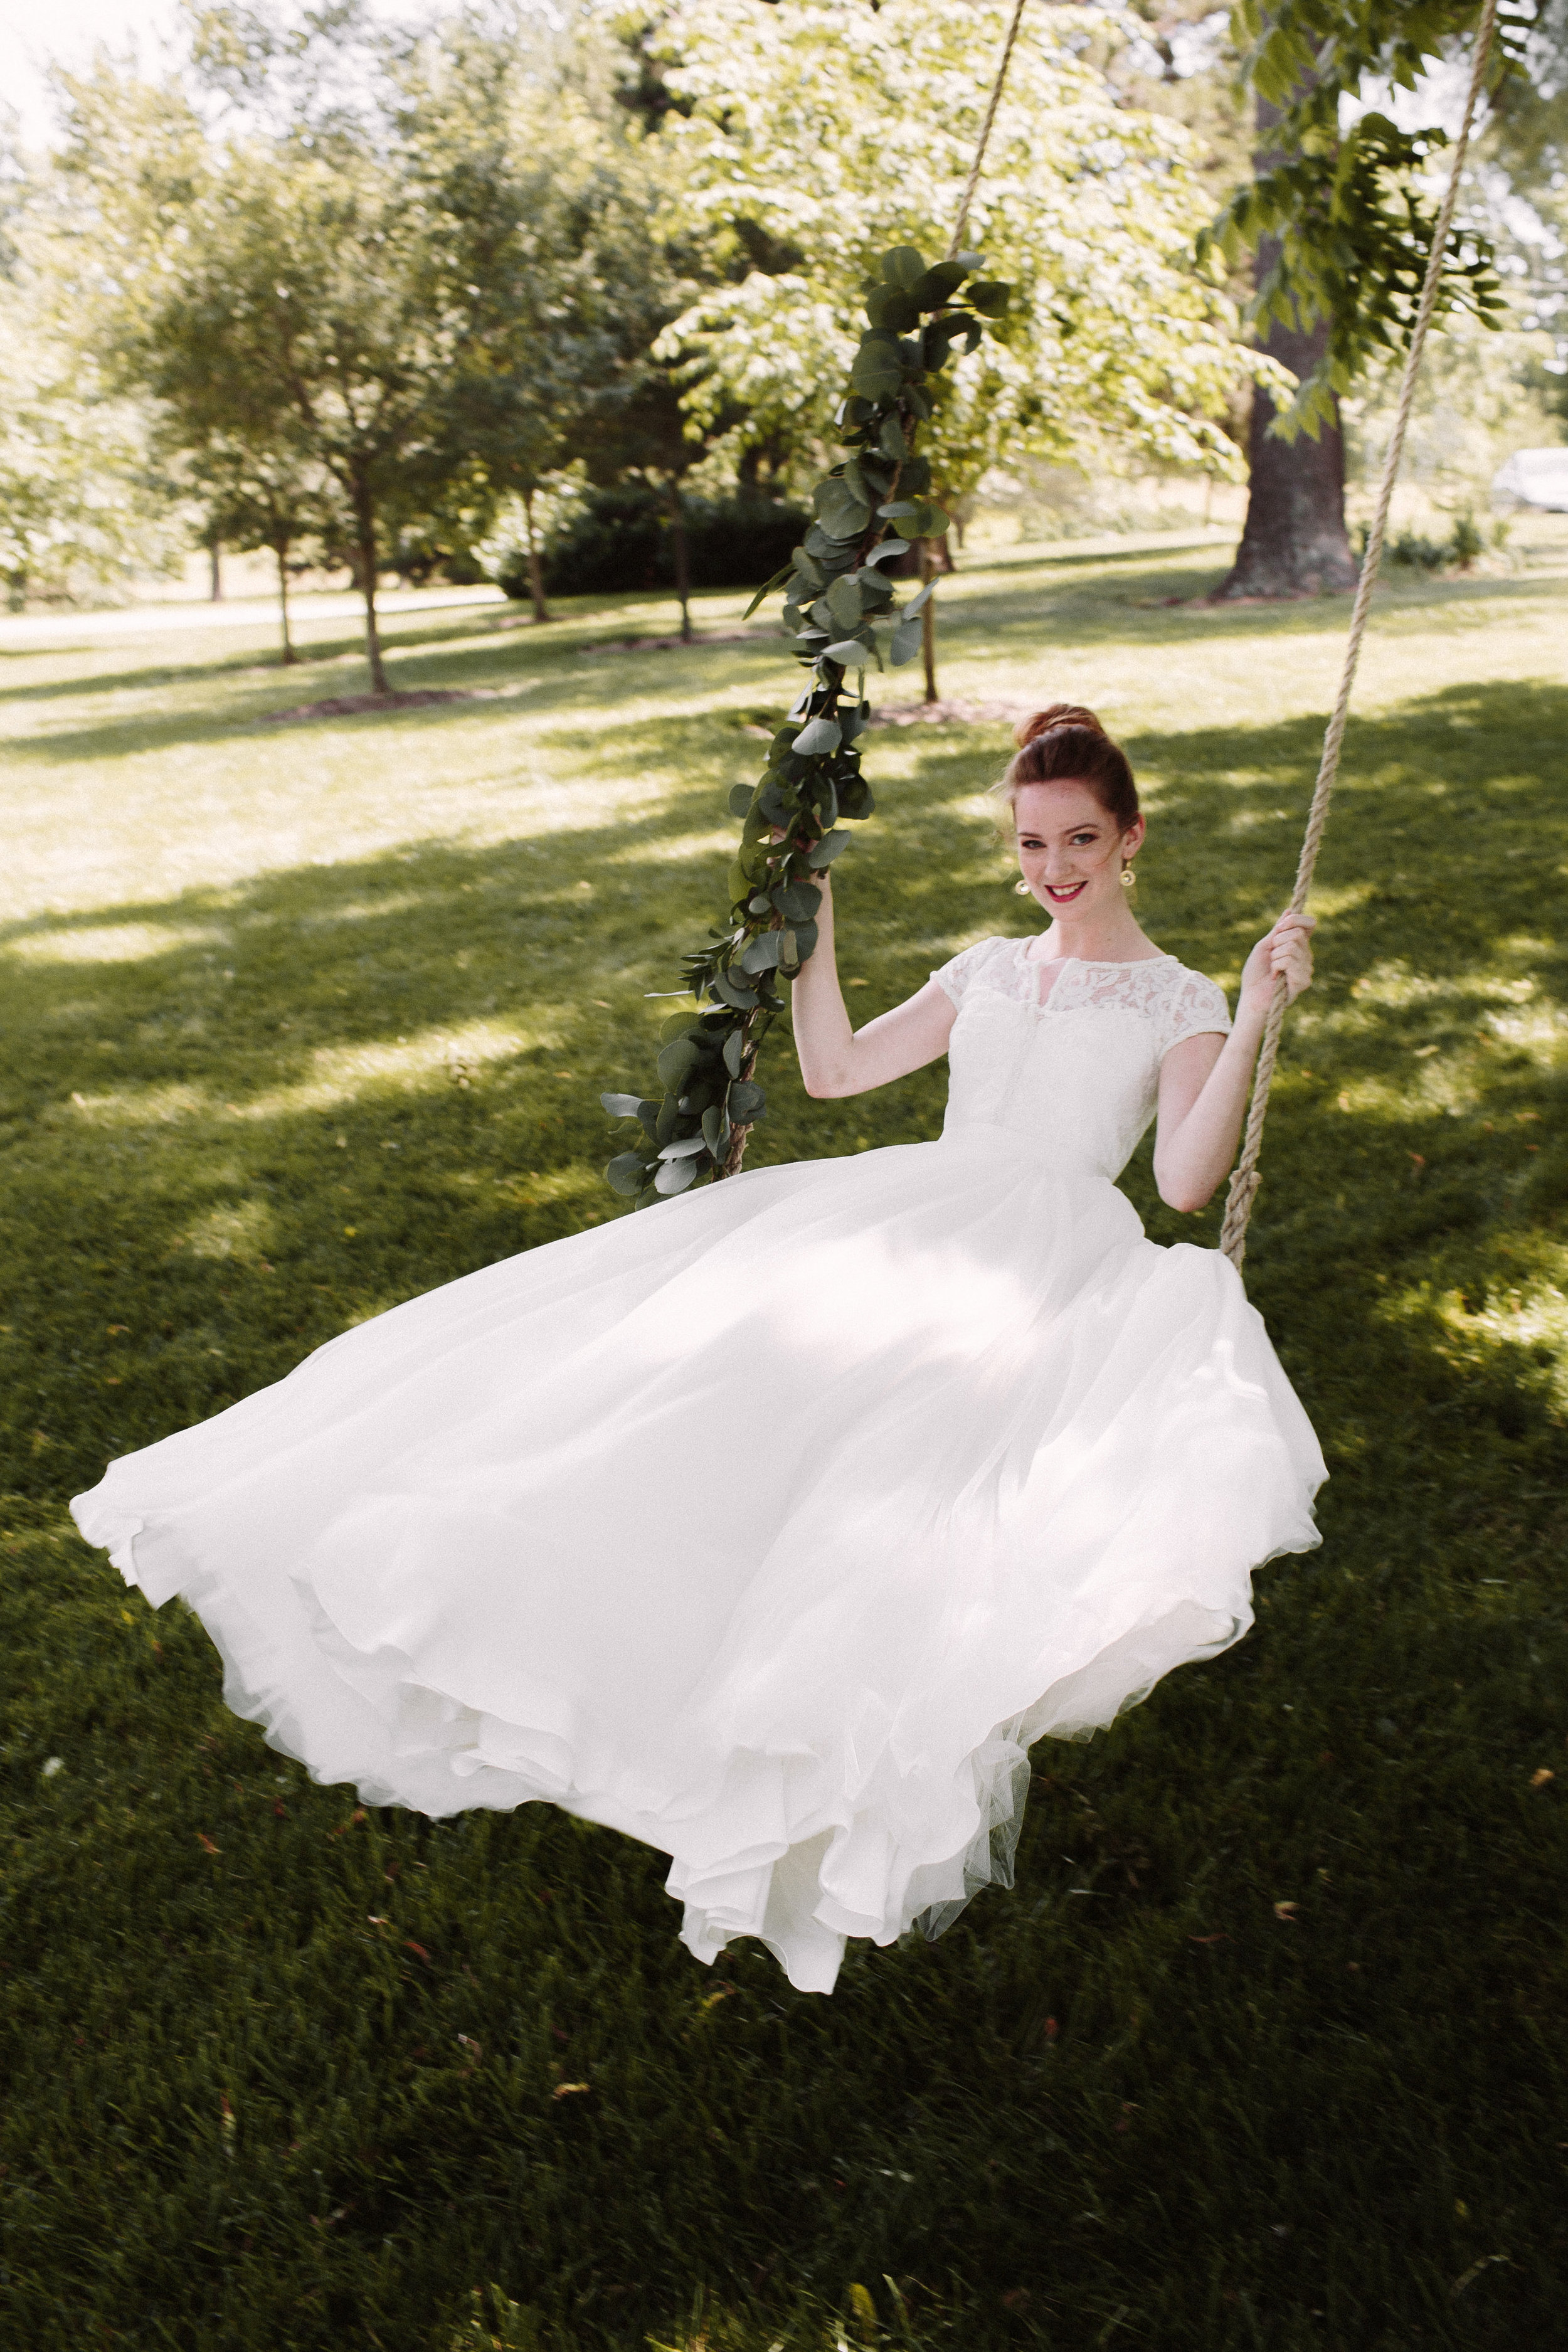 Lace and Liberty Wedding Dresses by betty clicker photography